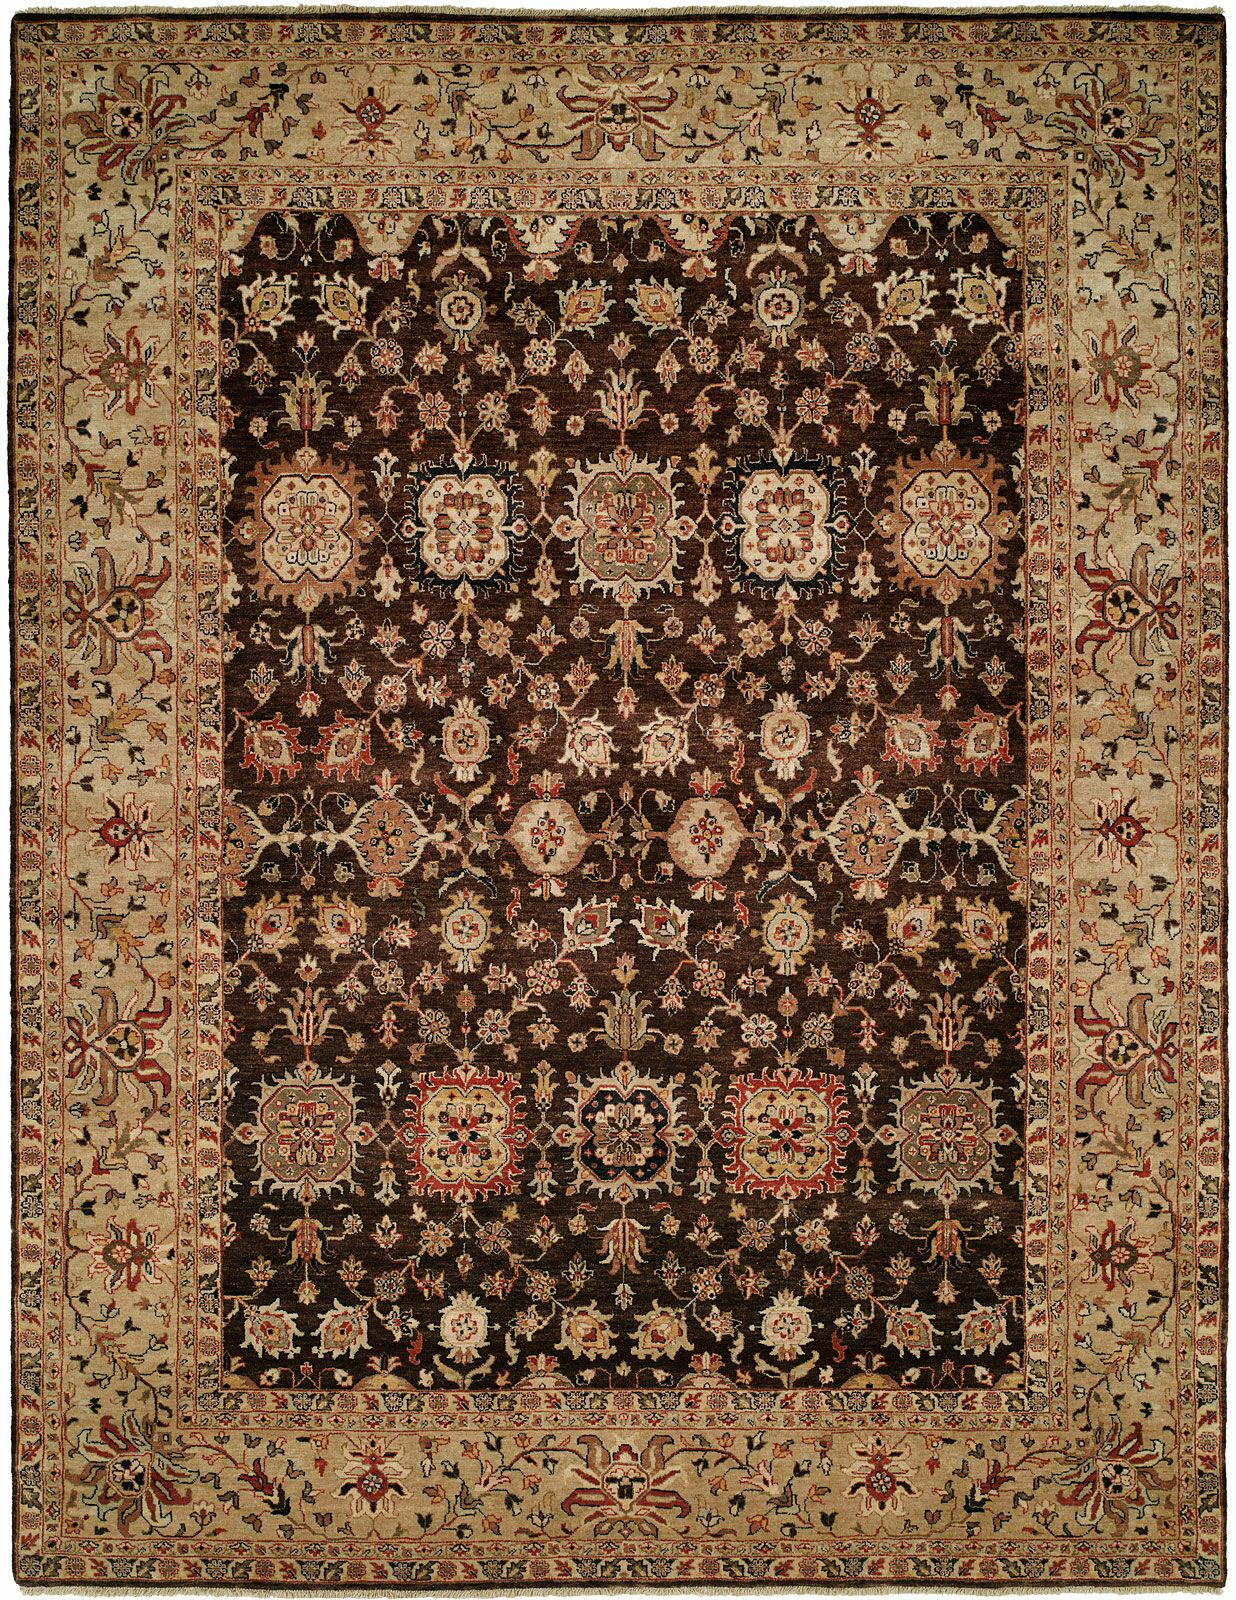 Mathilda Hand Knotted Wool Brown/Beige Area Rug Rug Size: Rectangle 10' x 14'